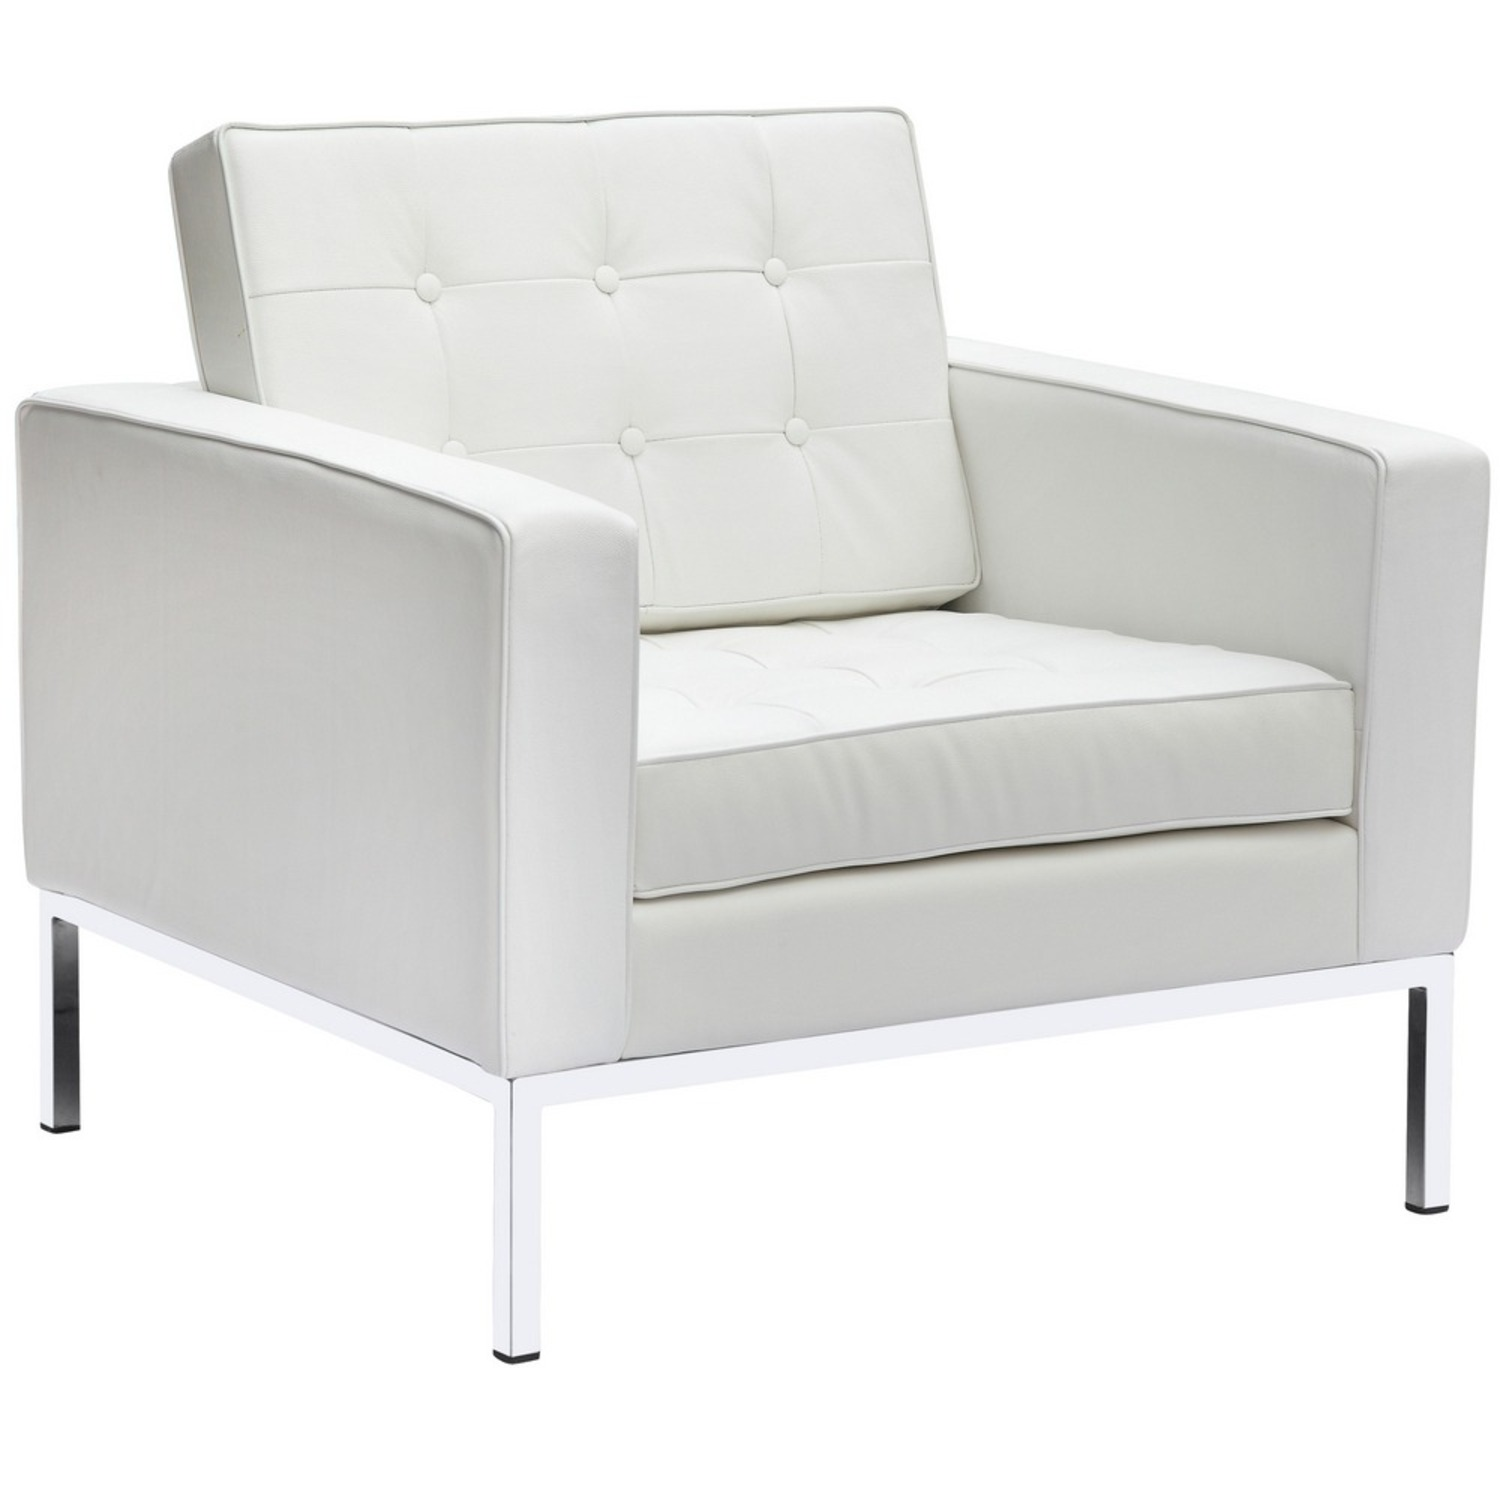 Modern Arm Chair In White Italian Leather - image-0